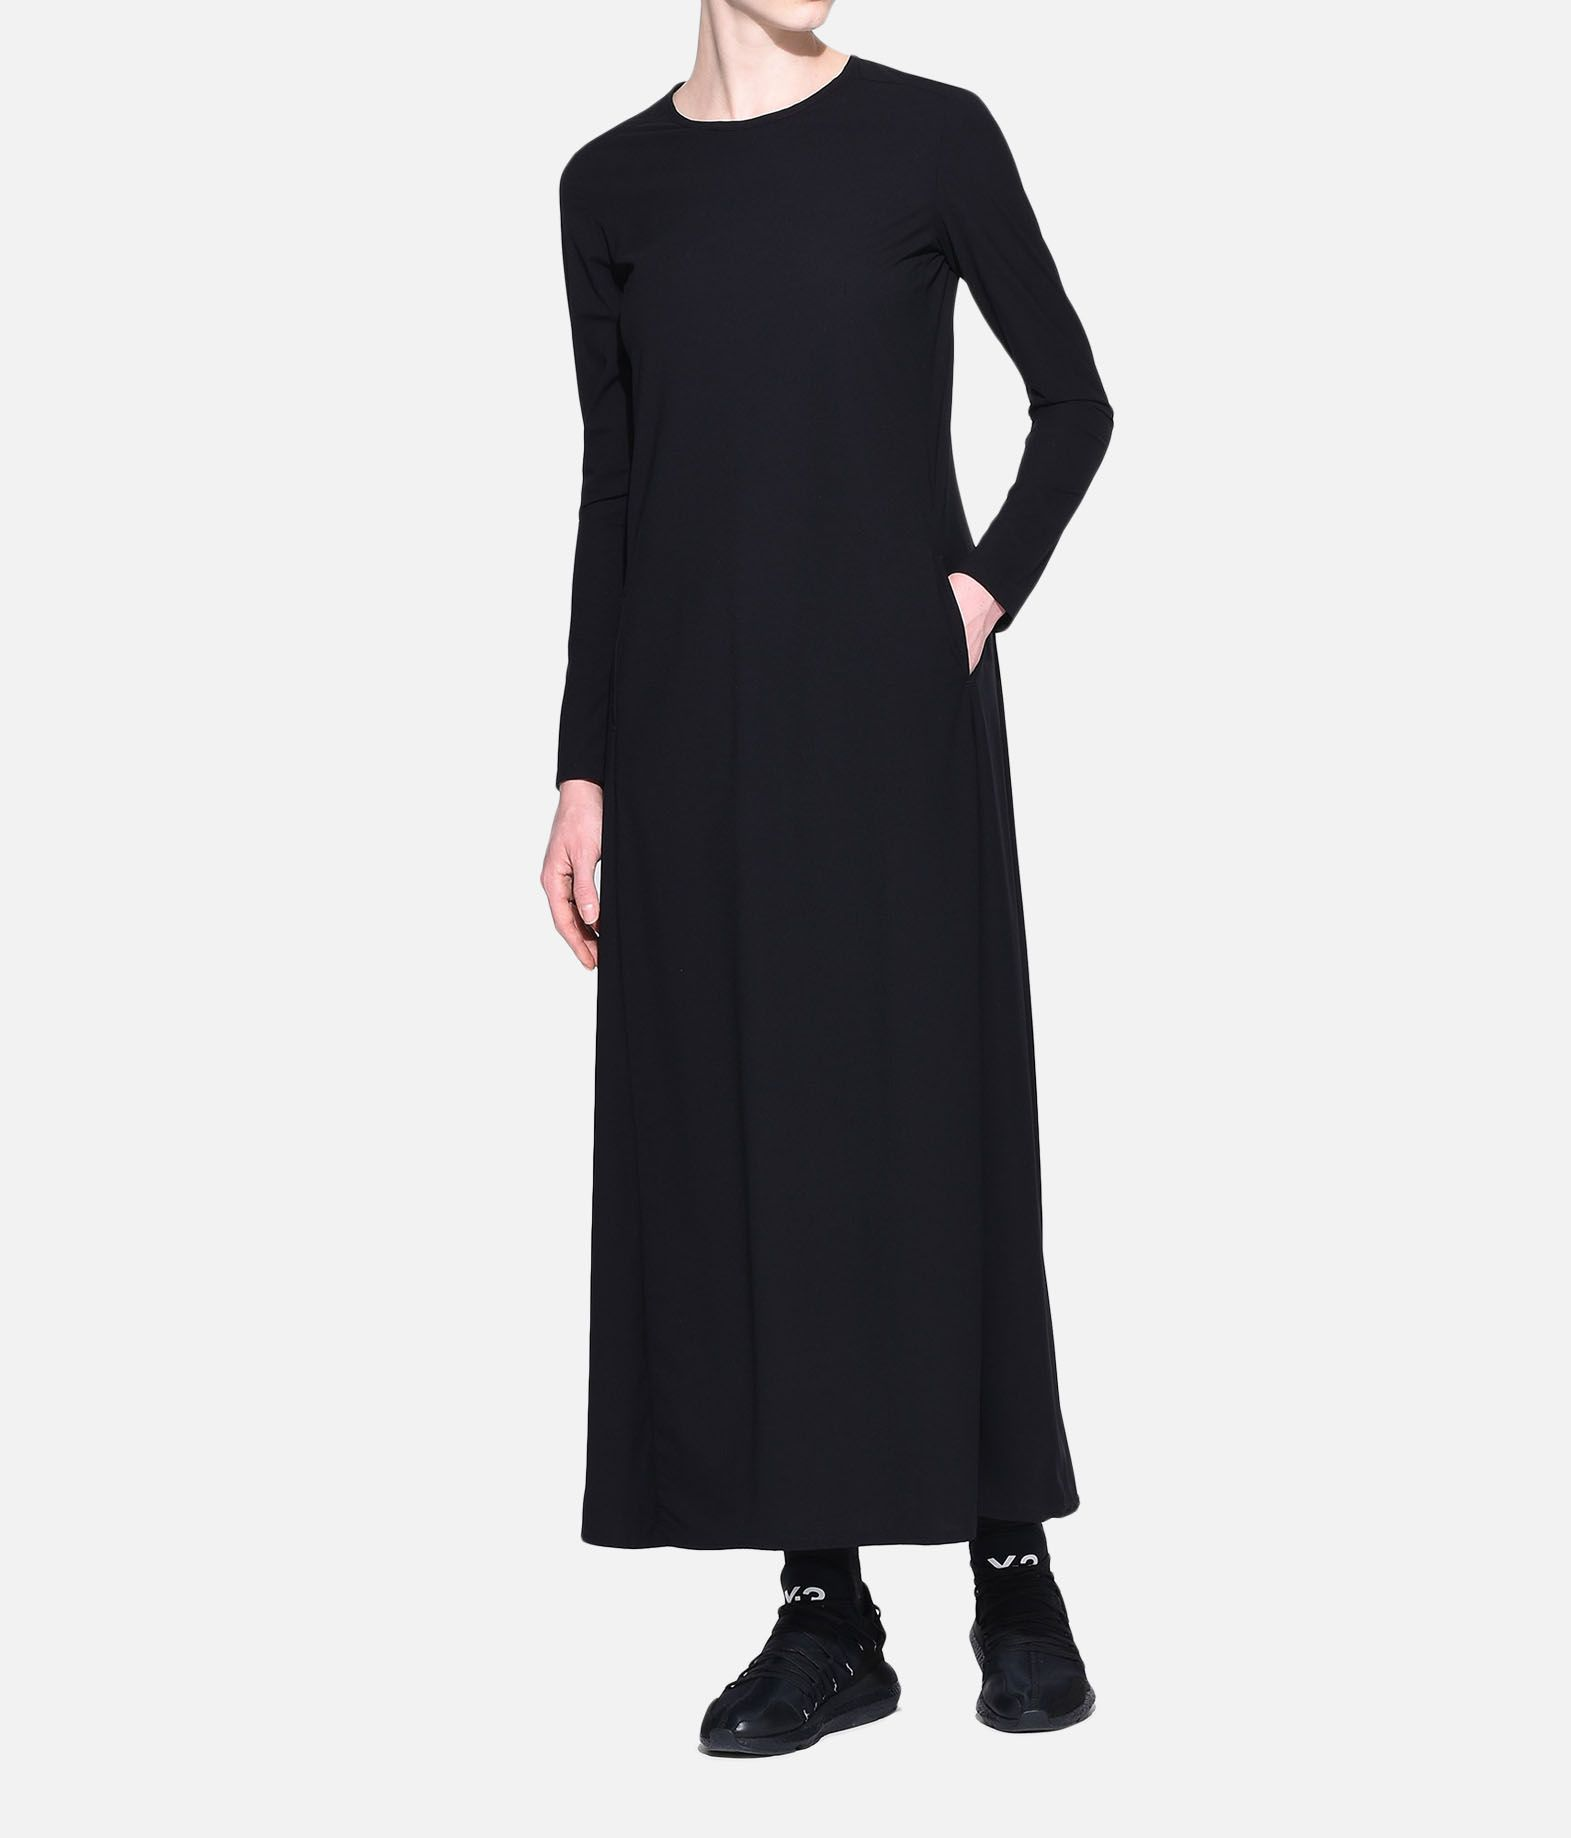 Y-3 Y-3 Stacked Logo Dress Long dress Woman a